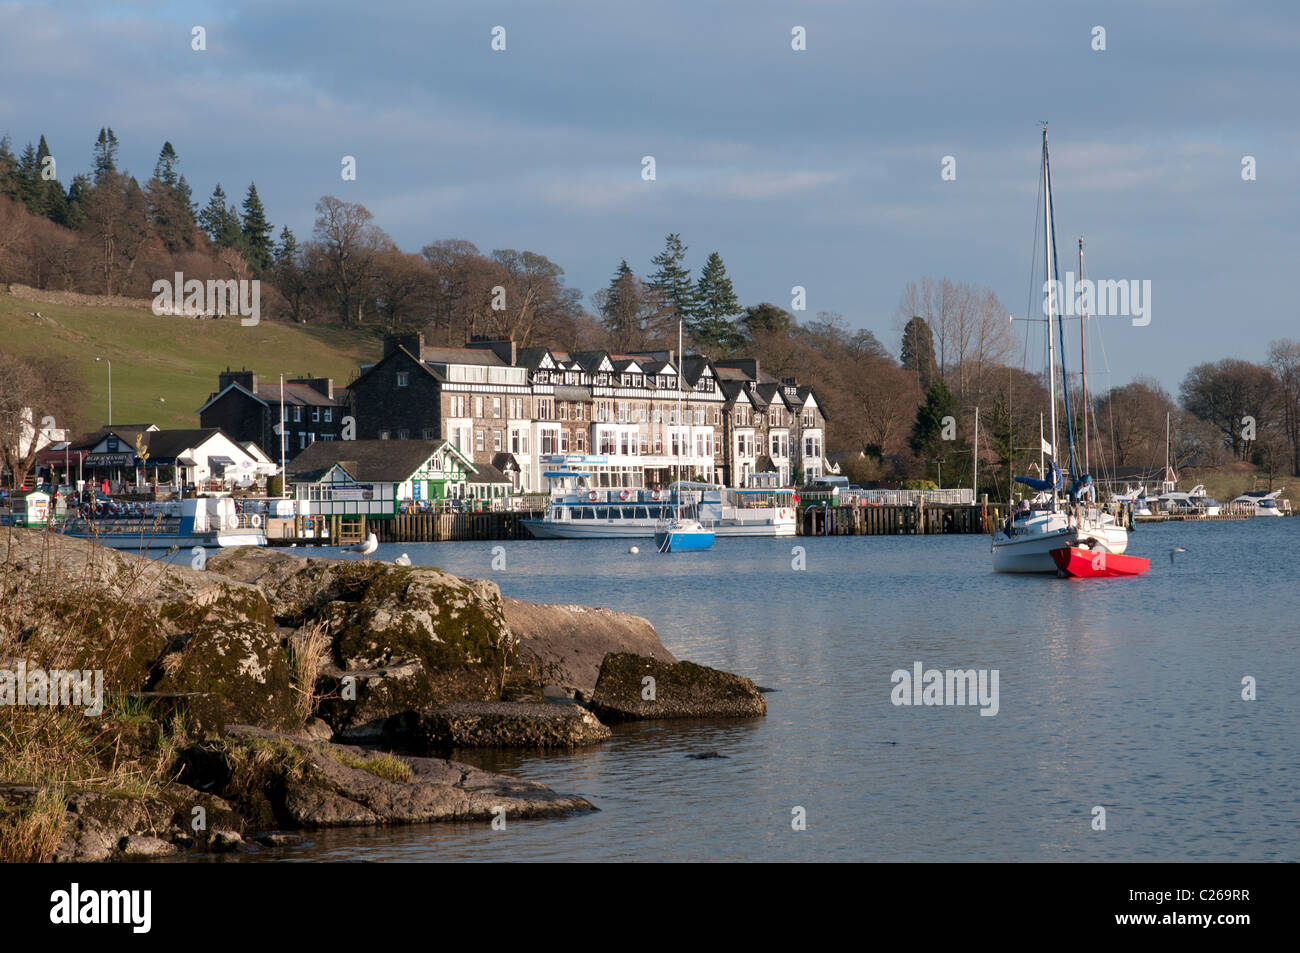 The peaceful scene of Waterhead the northern end of Lake Windermere in the English Lake District close to Ambleside - Stock Image